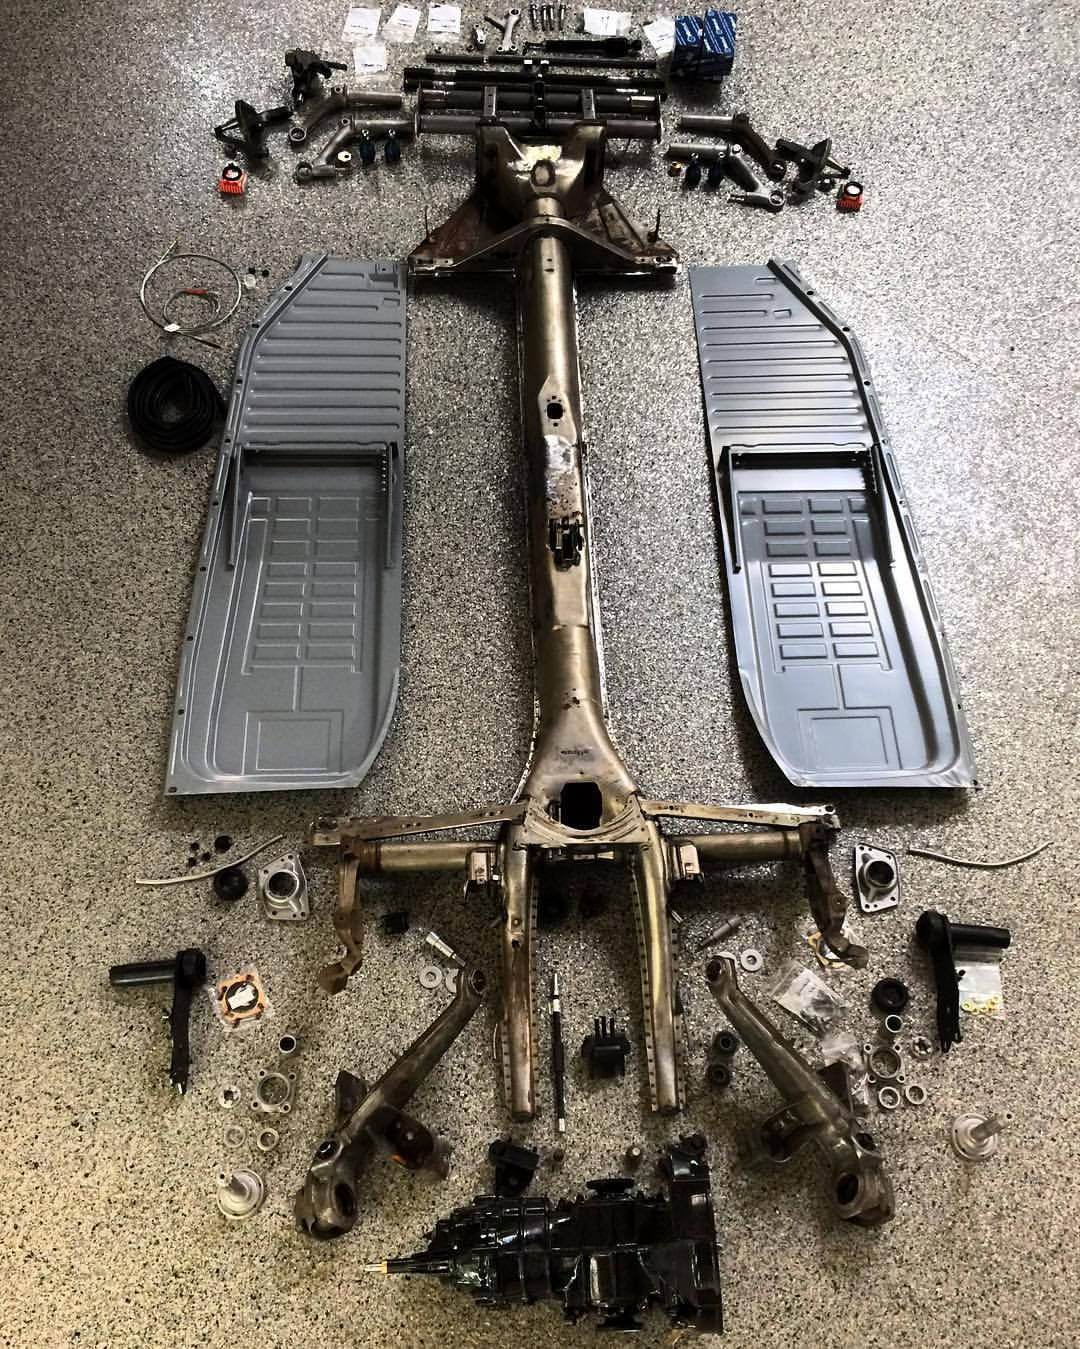 preperation for the ecochassis has begun $4995 for a completepreperation for the ecochassis has begun $4995 for a complete airkewld chassis featuring a shockless probuilt beam, new pan halves from